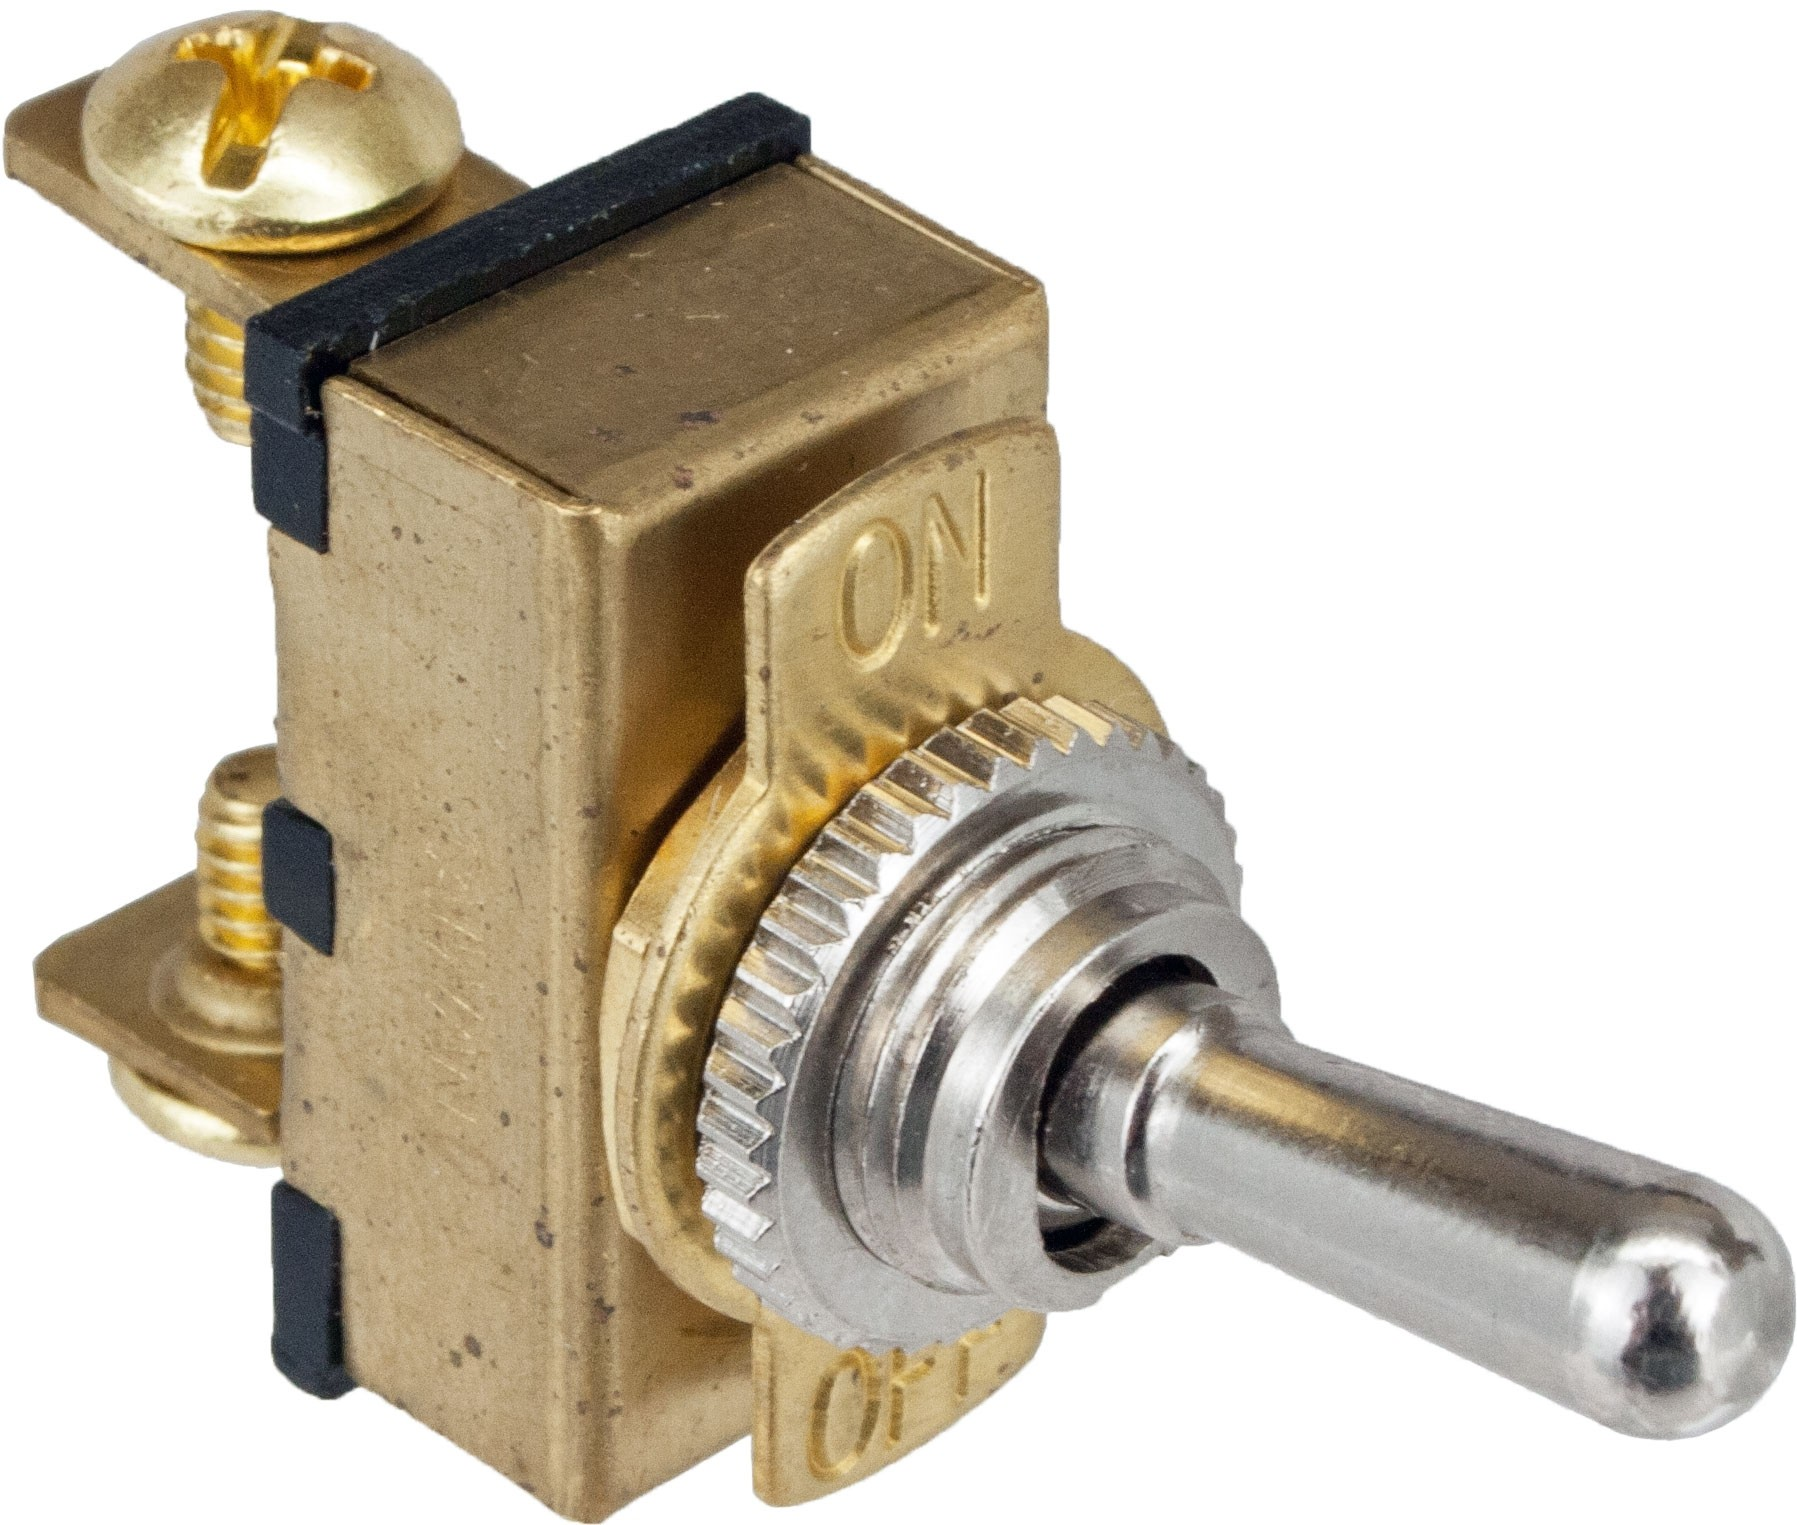 2 Terminal Toggle Switch ON/OFF SPST Brass Casing   765075   ElecDirect